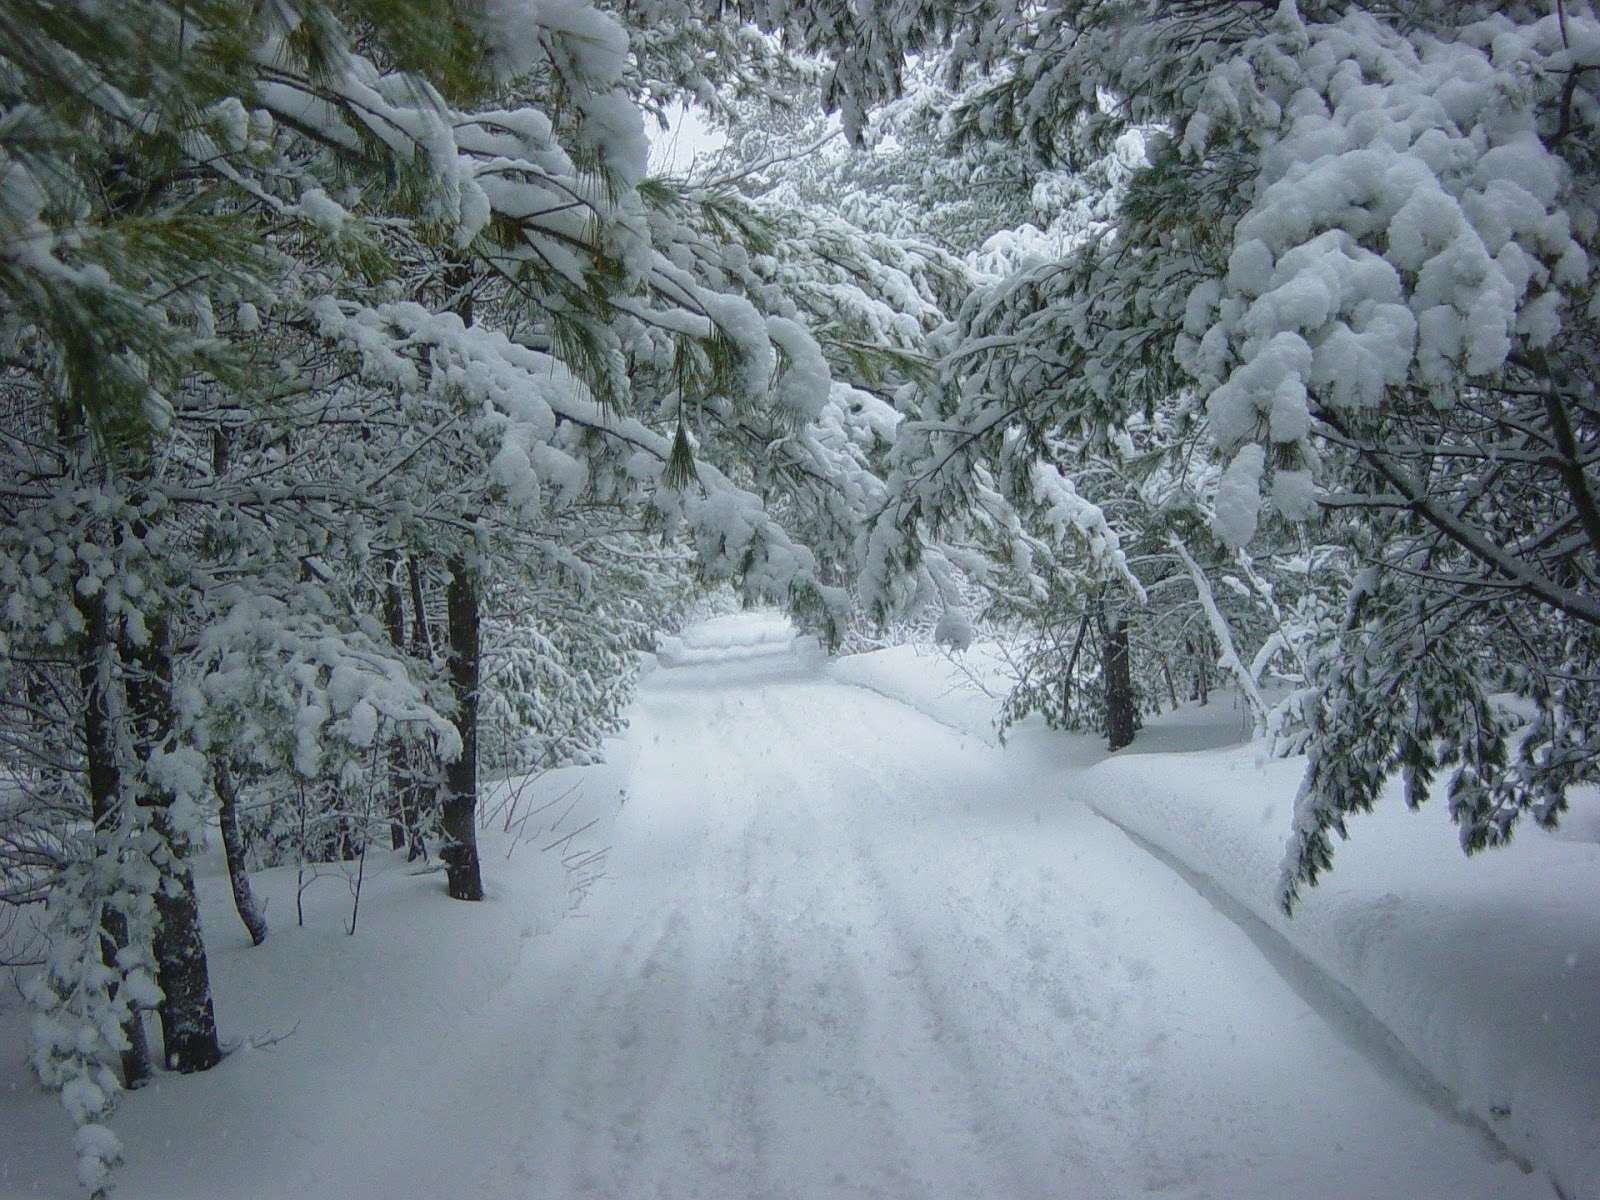 a snowy road weaves through a forest covered in snow